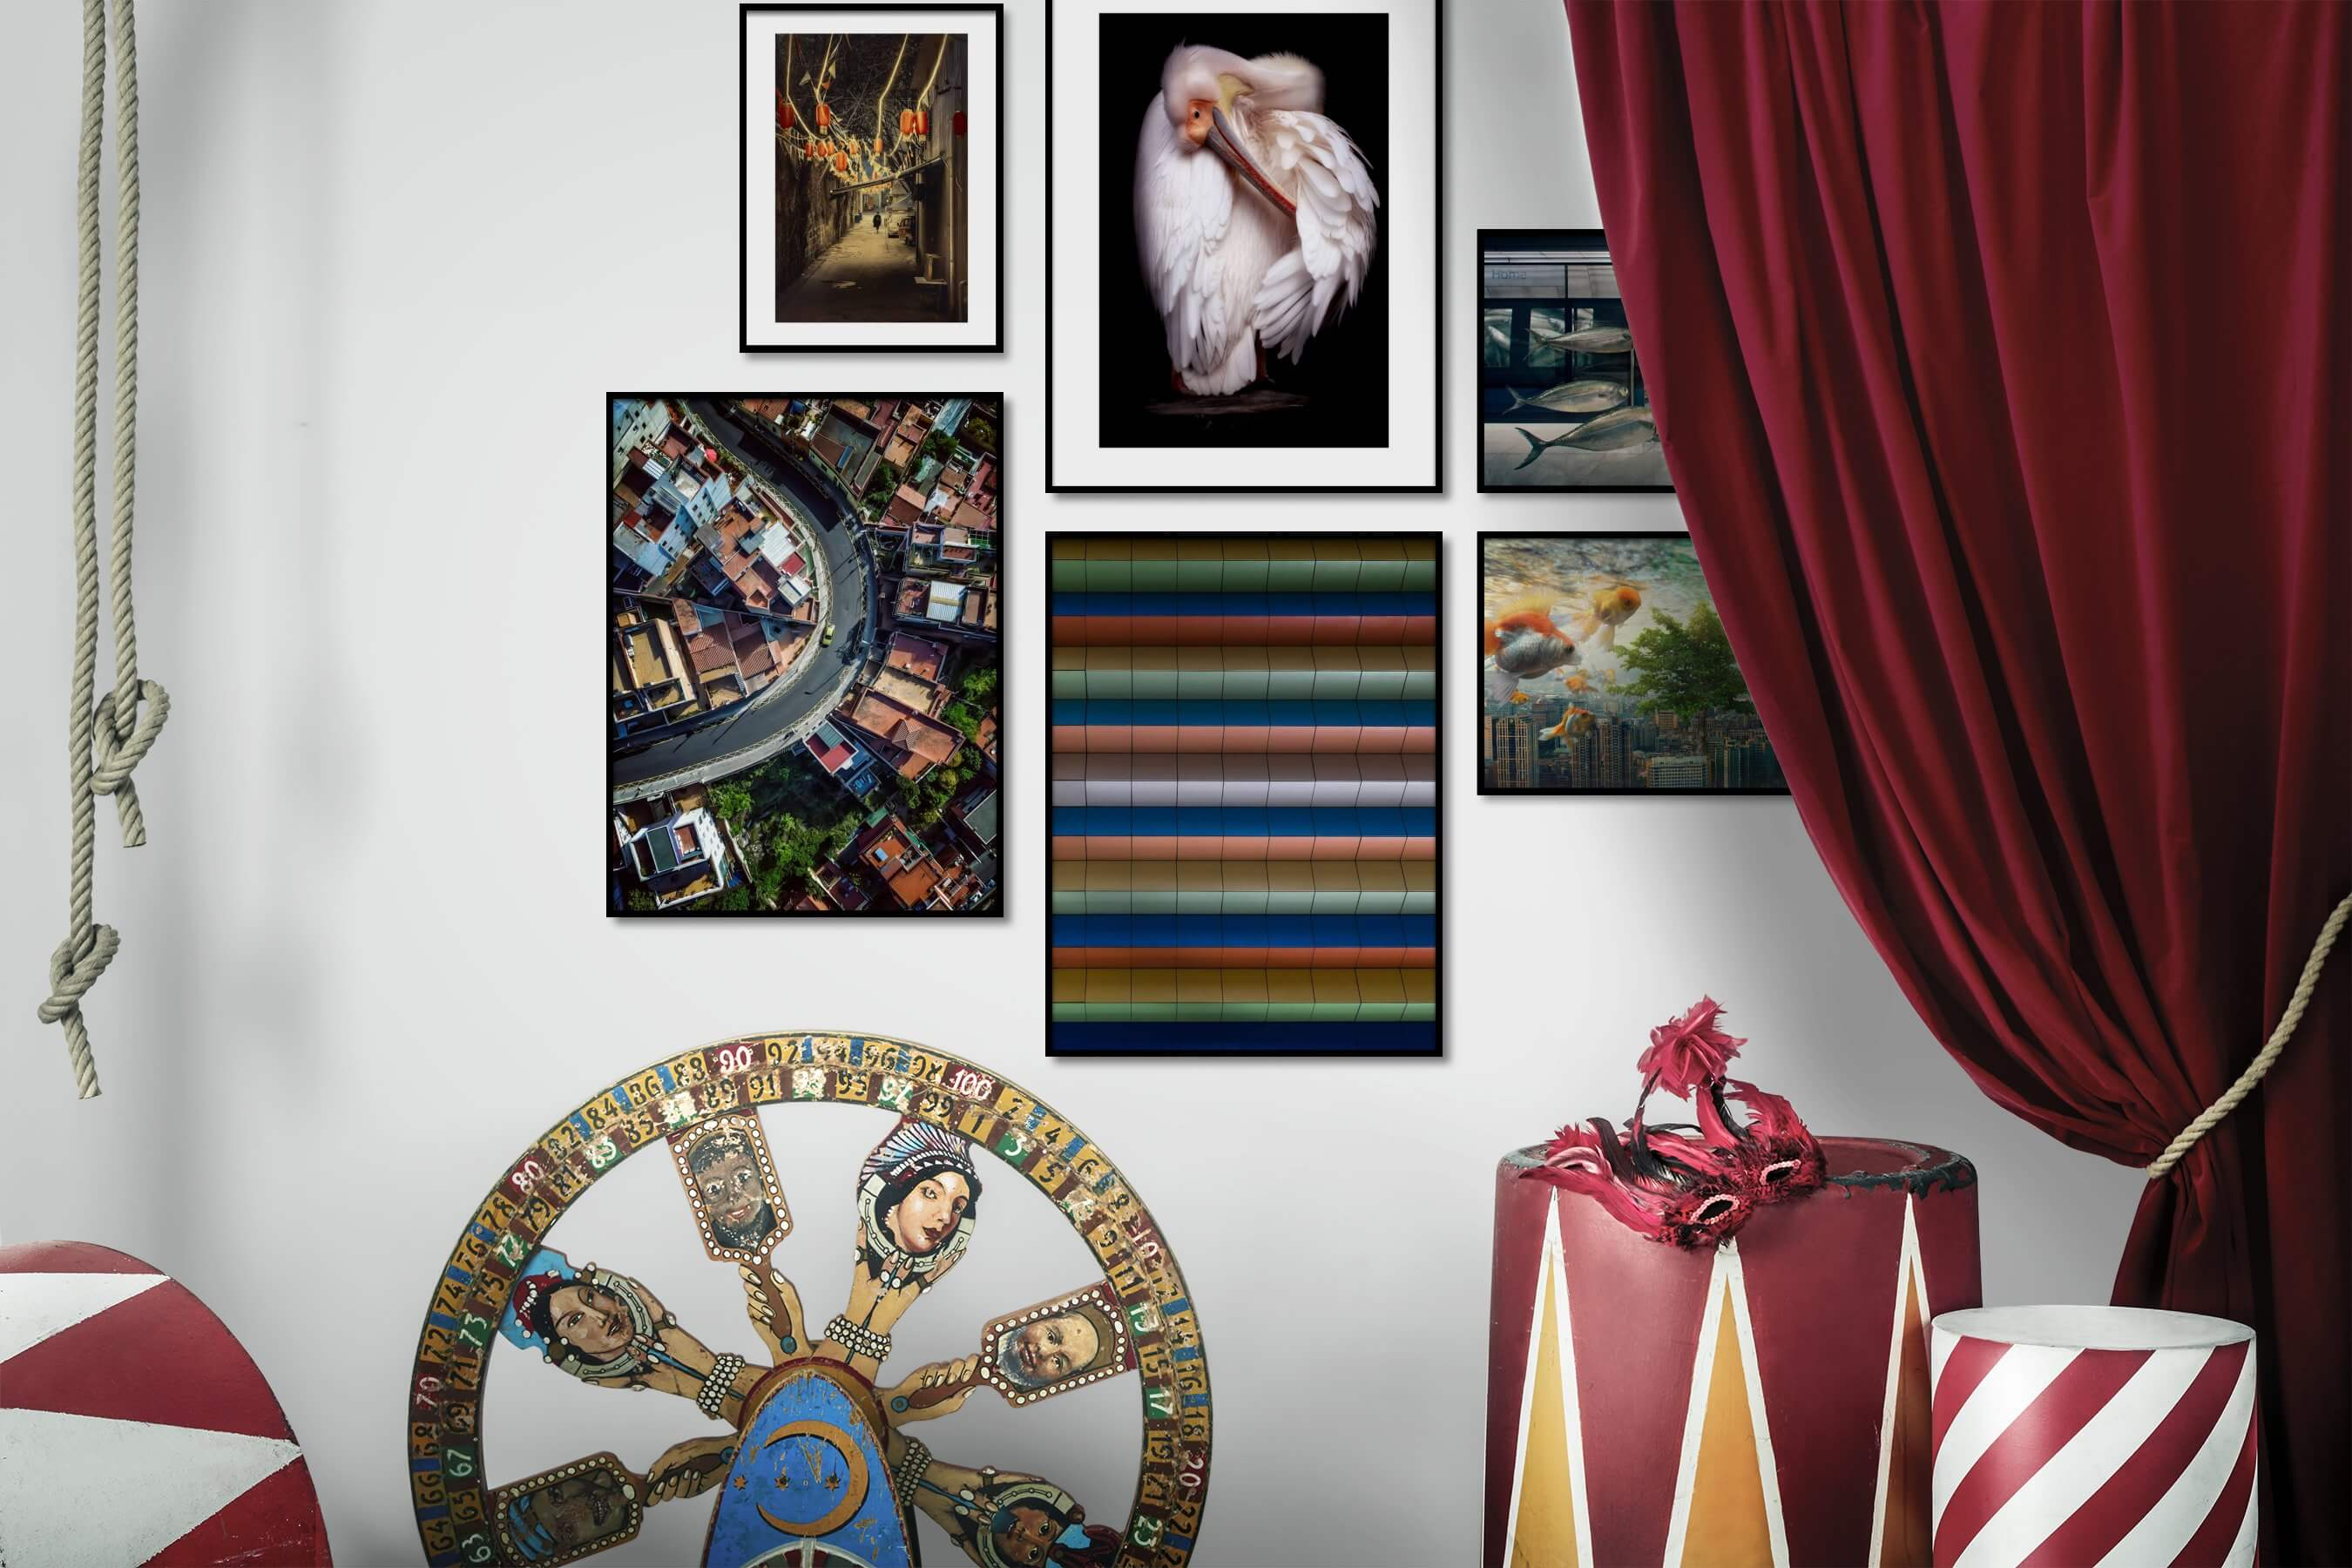 Gallery wall idea with six framed pictures arranged on a wall depicting City Life, Animals, For the Maximalist, and Artsy